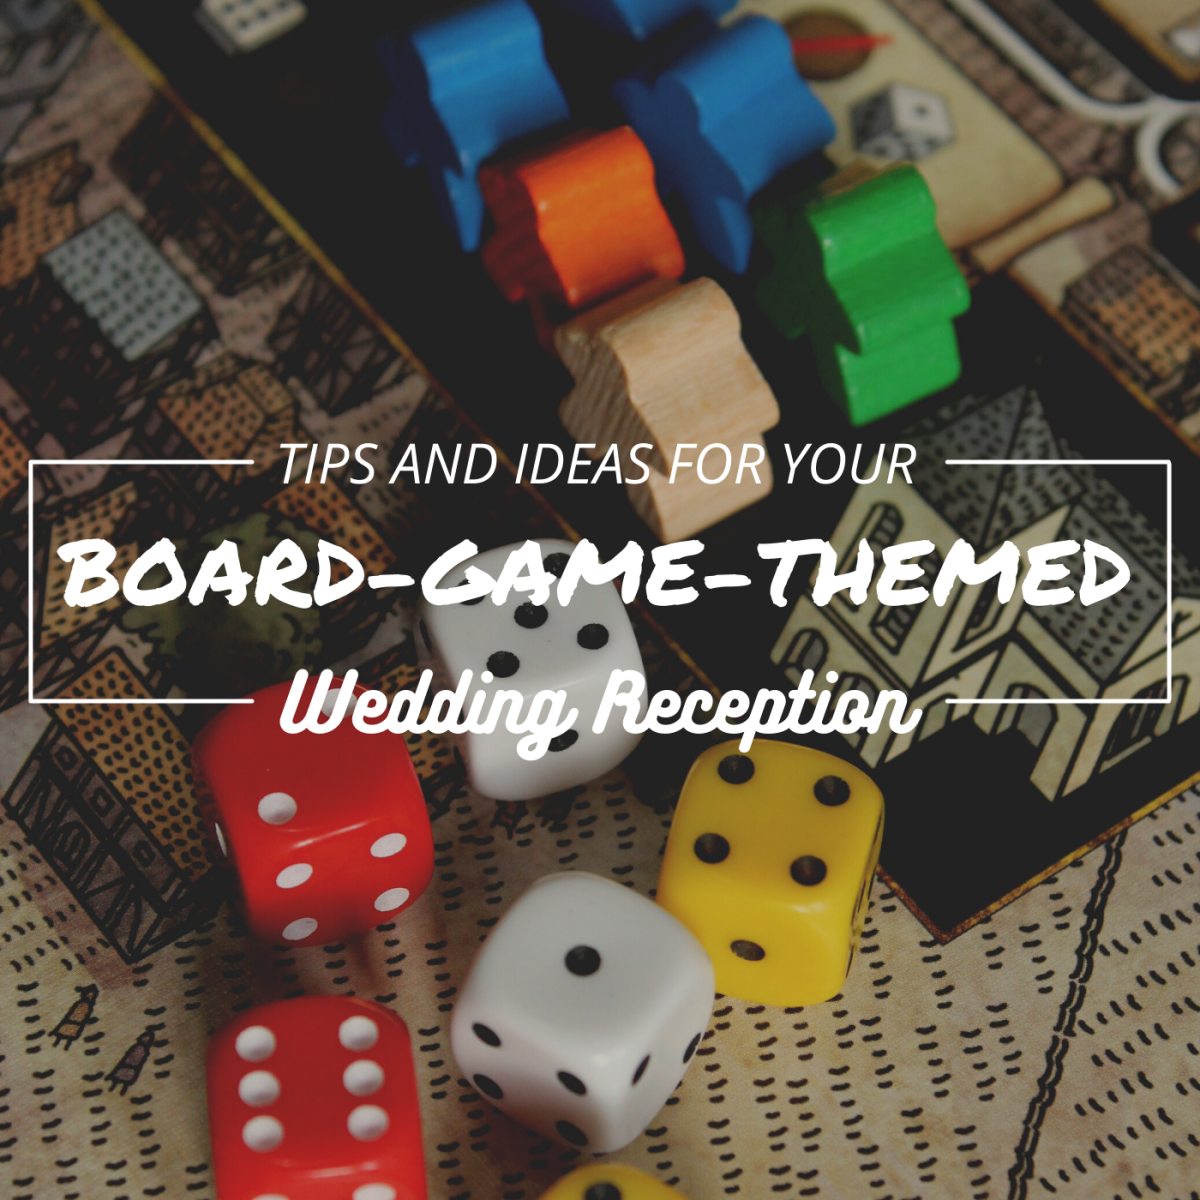 A board-game theme makes for a fun twist on the traditional wedding reception.